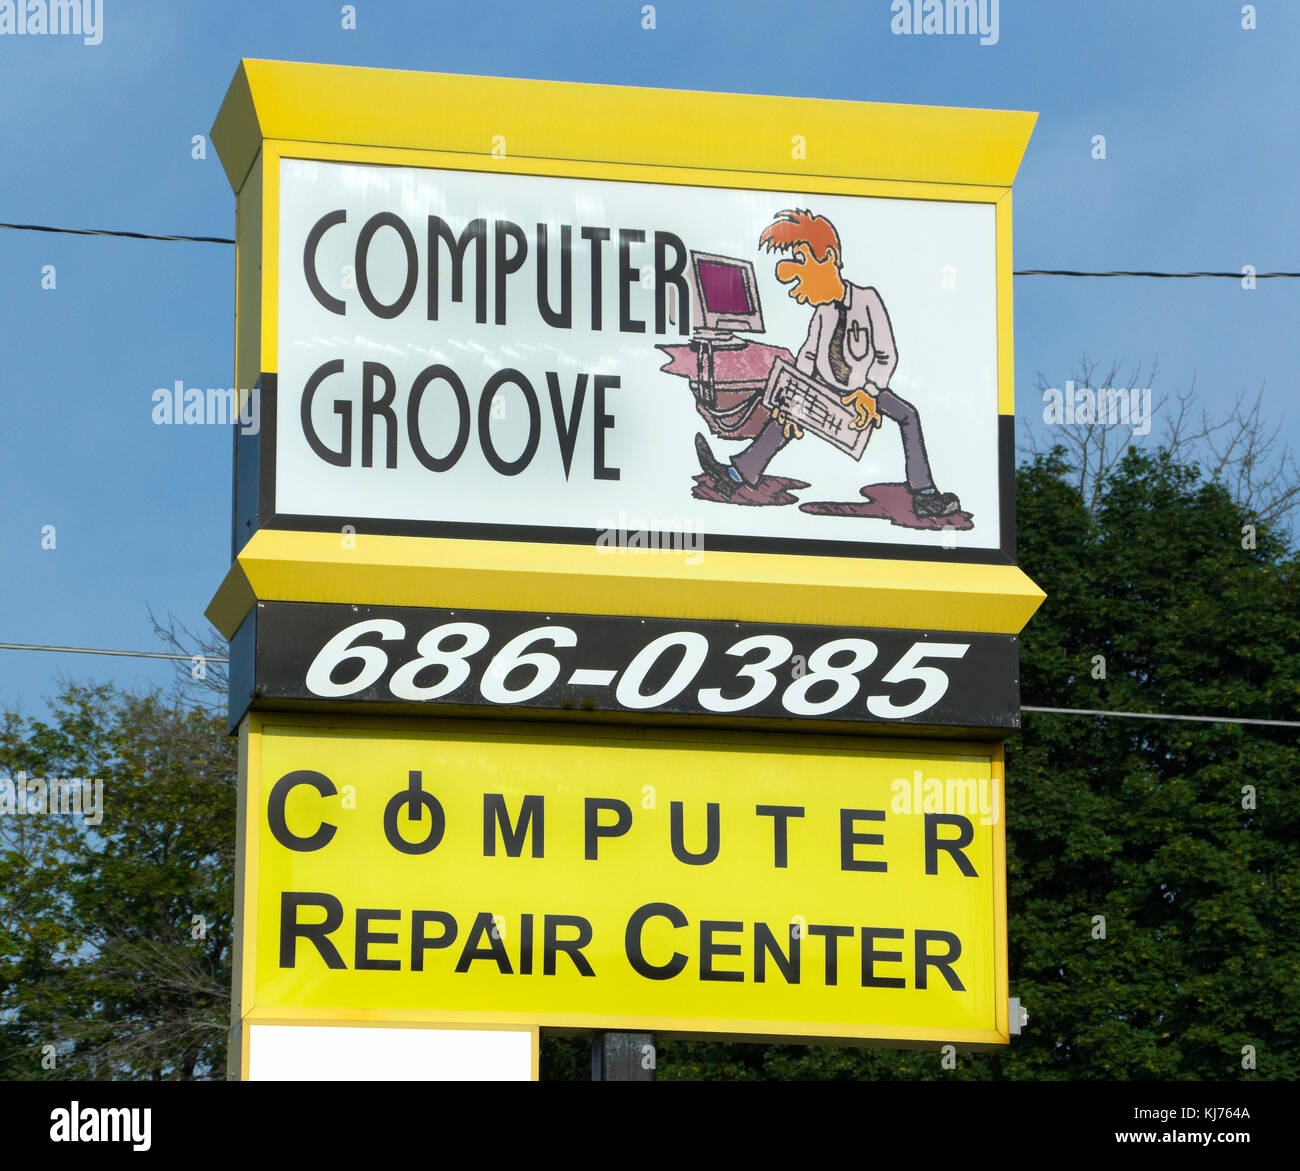 Computer Repair Shop Stock Photos Repairing Circuit Board Royalty Free Photo Image Groove Center Sign Manitowoc Wisconsin